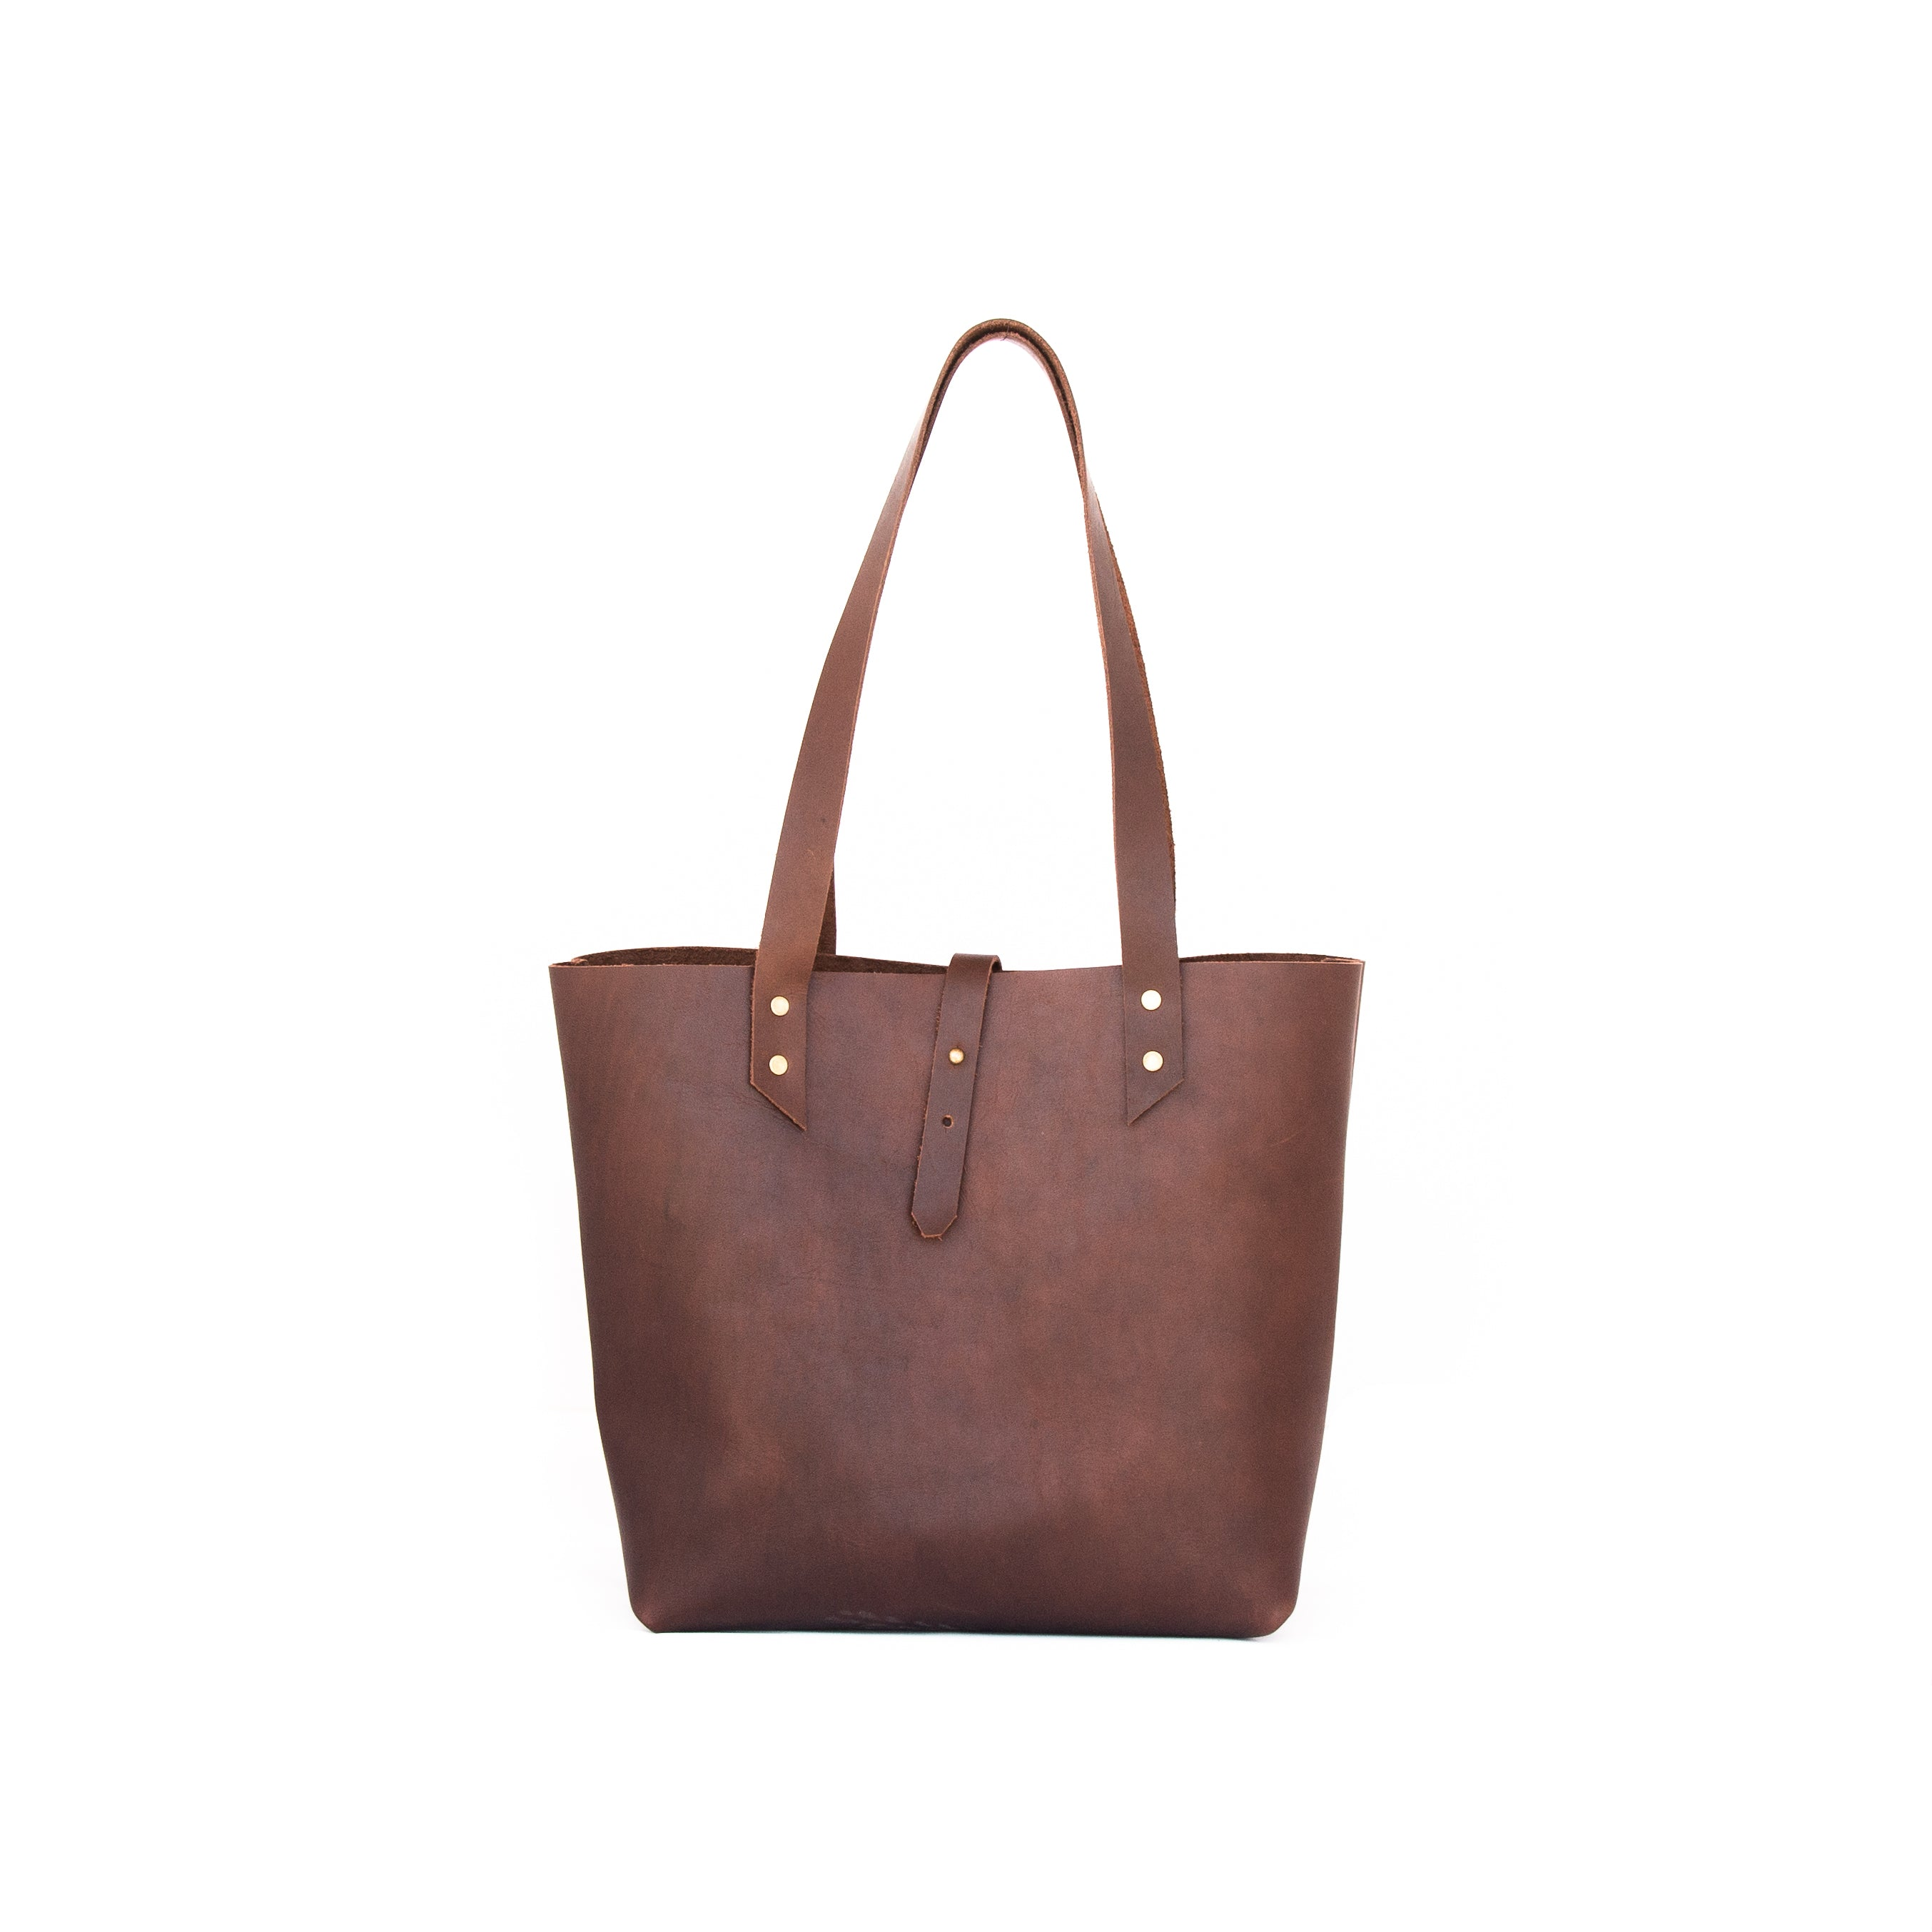 Classic Tote in Brown Leather - handcrafted by Market Canvas Leather in Tofino, BC, Canada